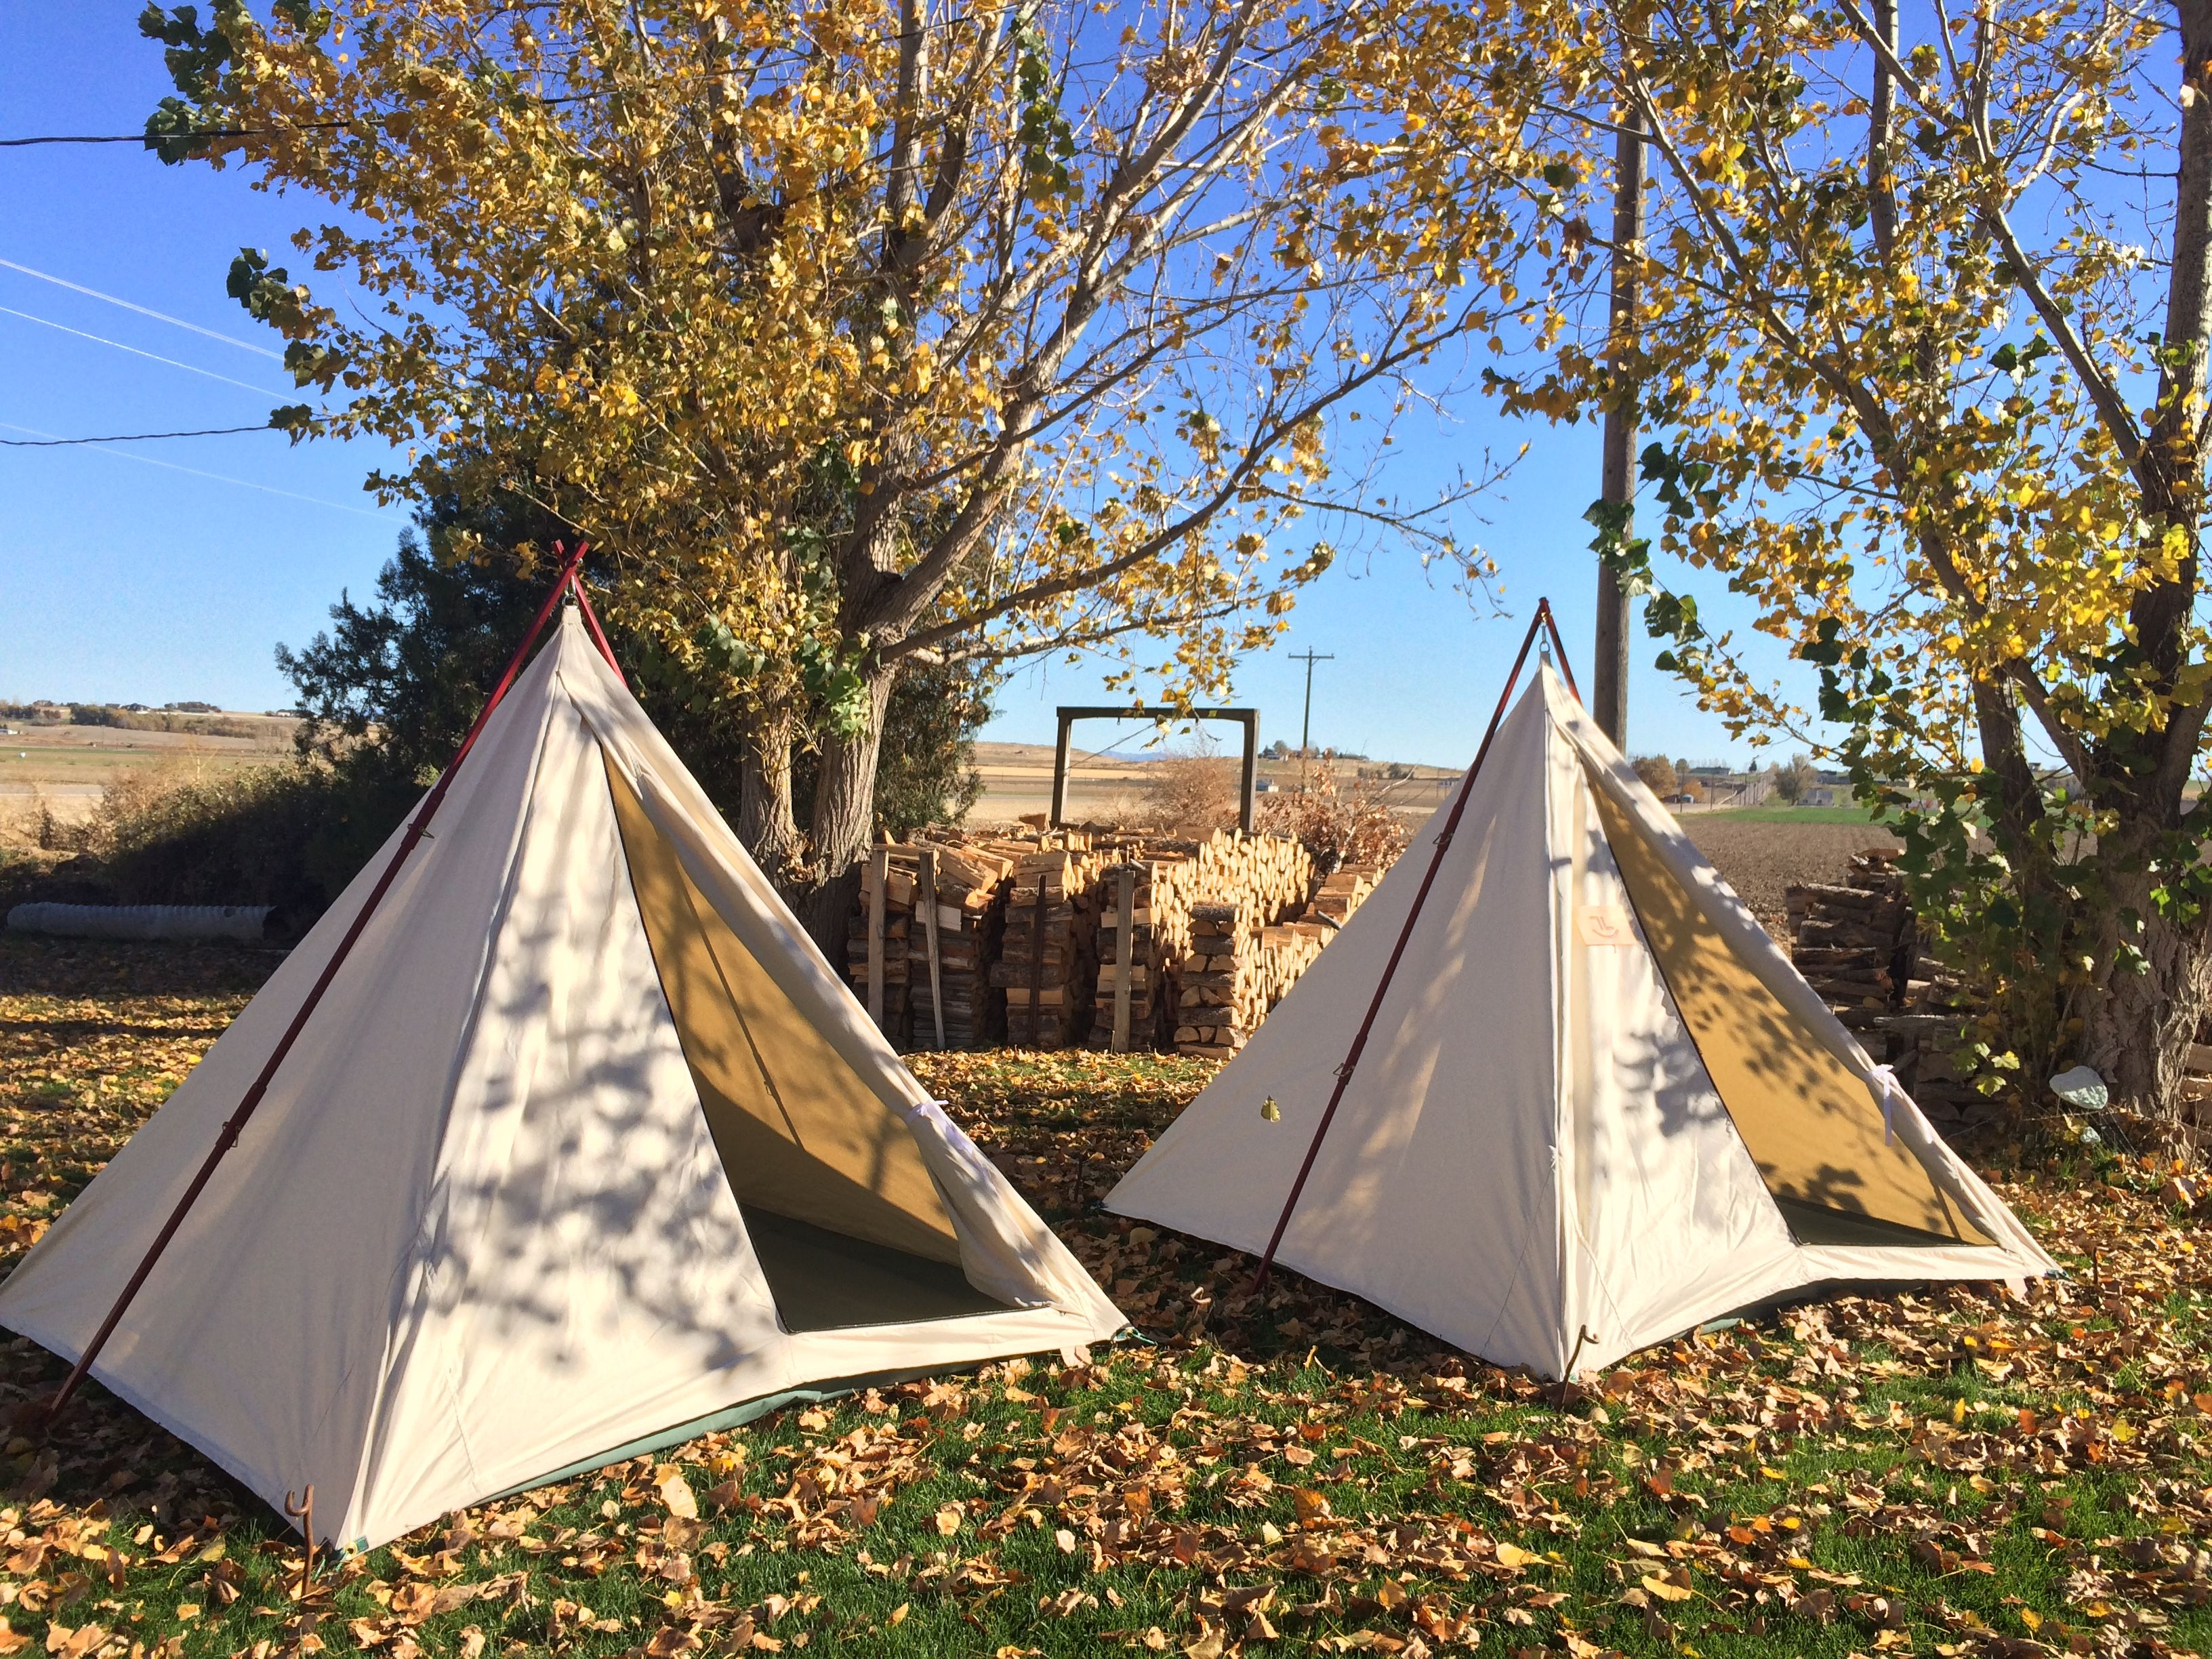 J bar D Canvas and Leather makes these cool cowboy range tents! Jbardcanvasandleather.com & J bar D Canvas and Leather makes these cool cowboy range tents ...